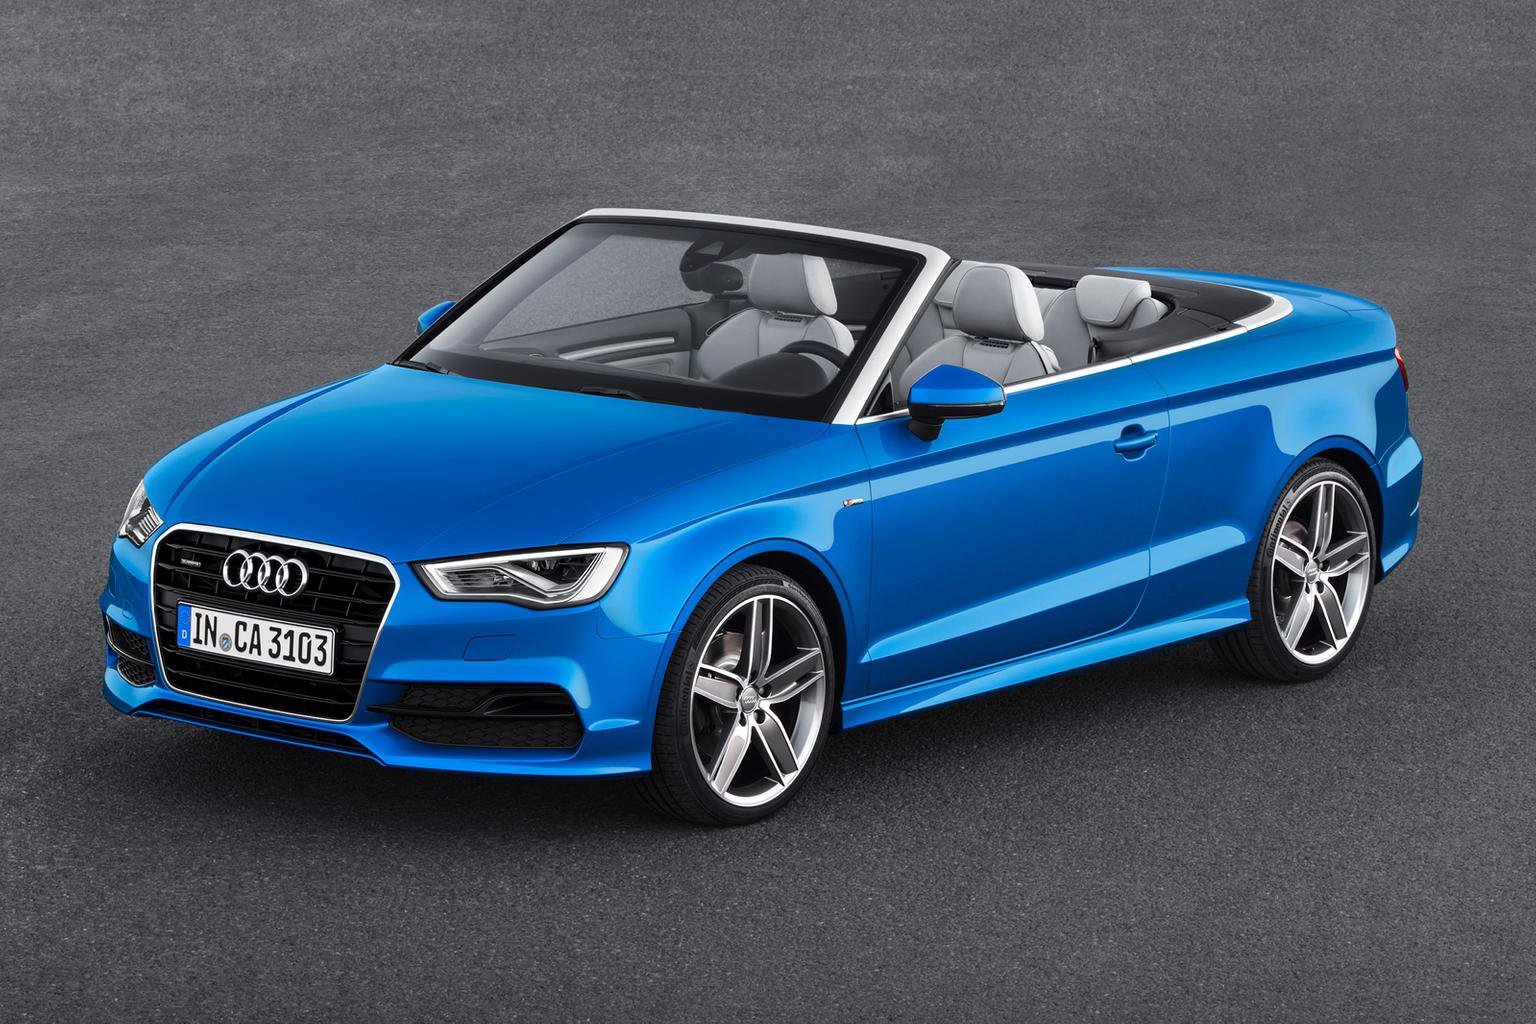 2014 Audi A3 Cabriolet revealed